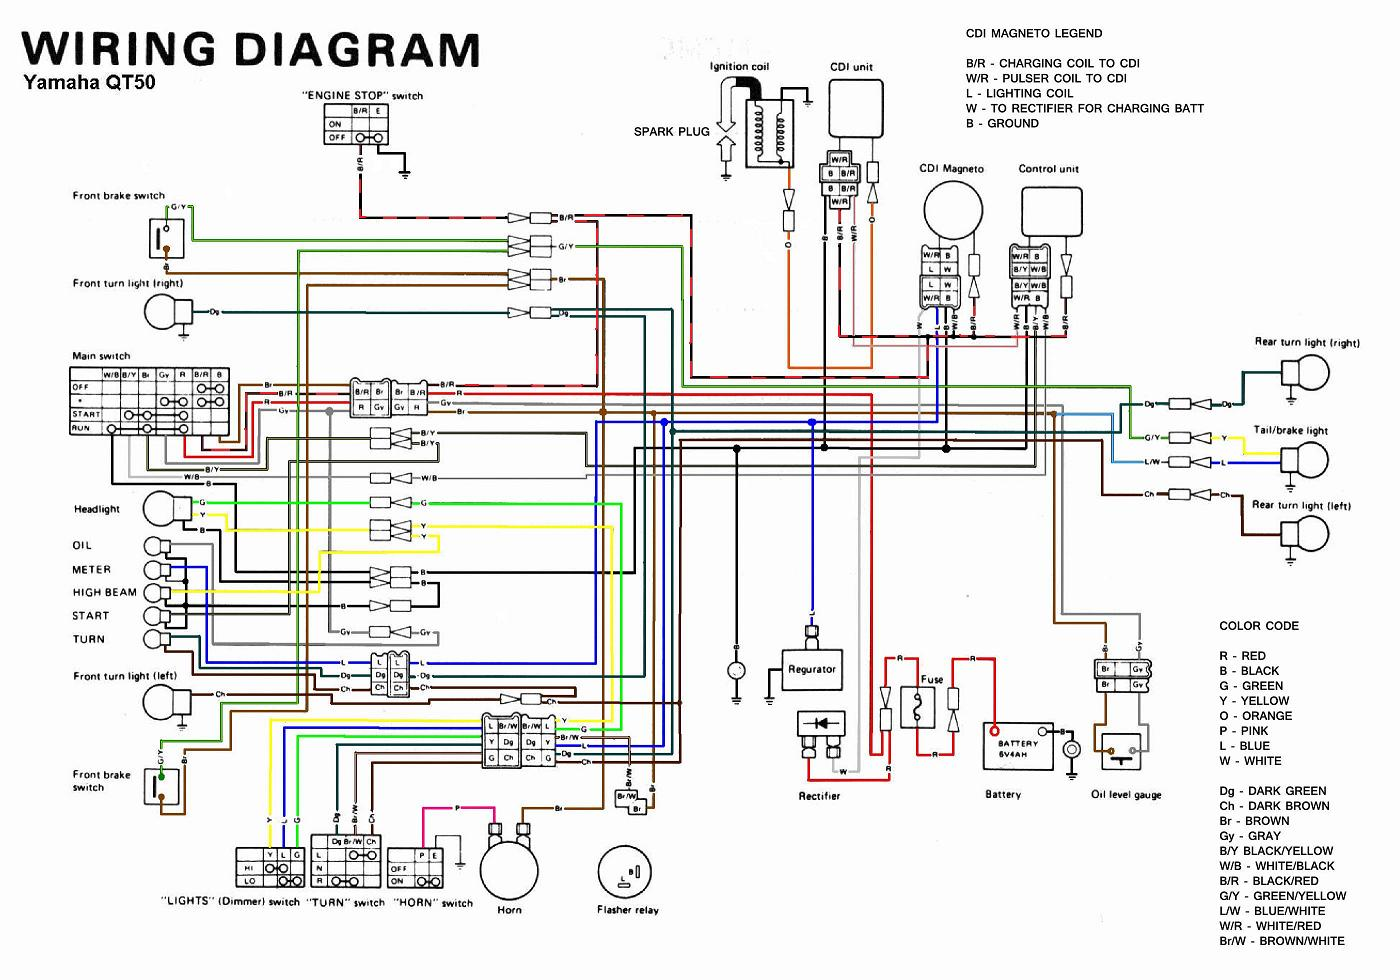 Honda Wiring Kit Library 85 S10 Diagram Free Picture Schematic Yamaha Qt50